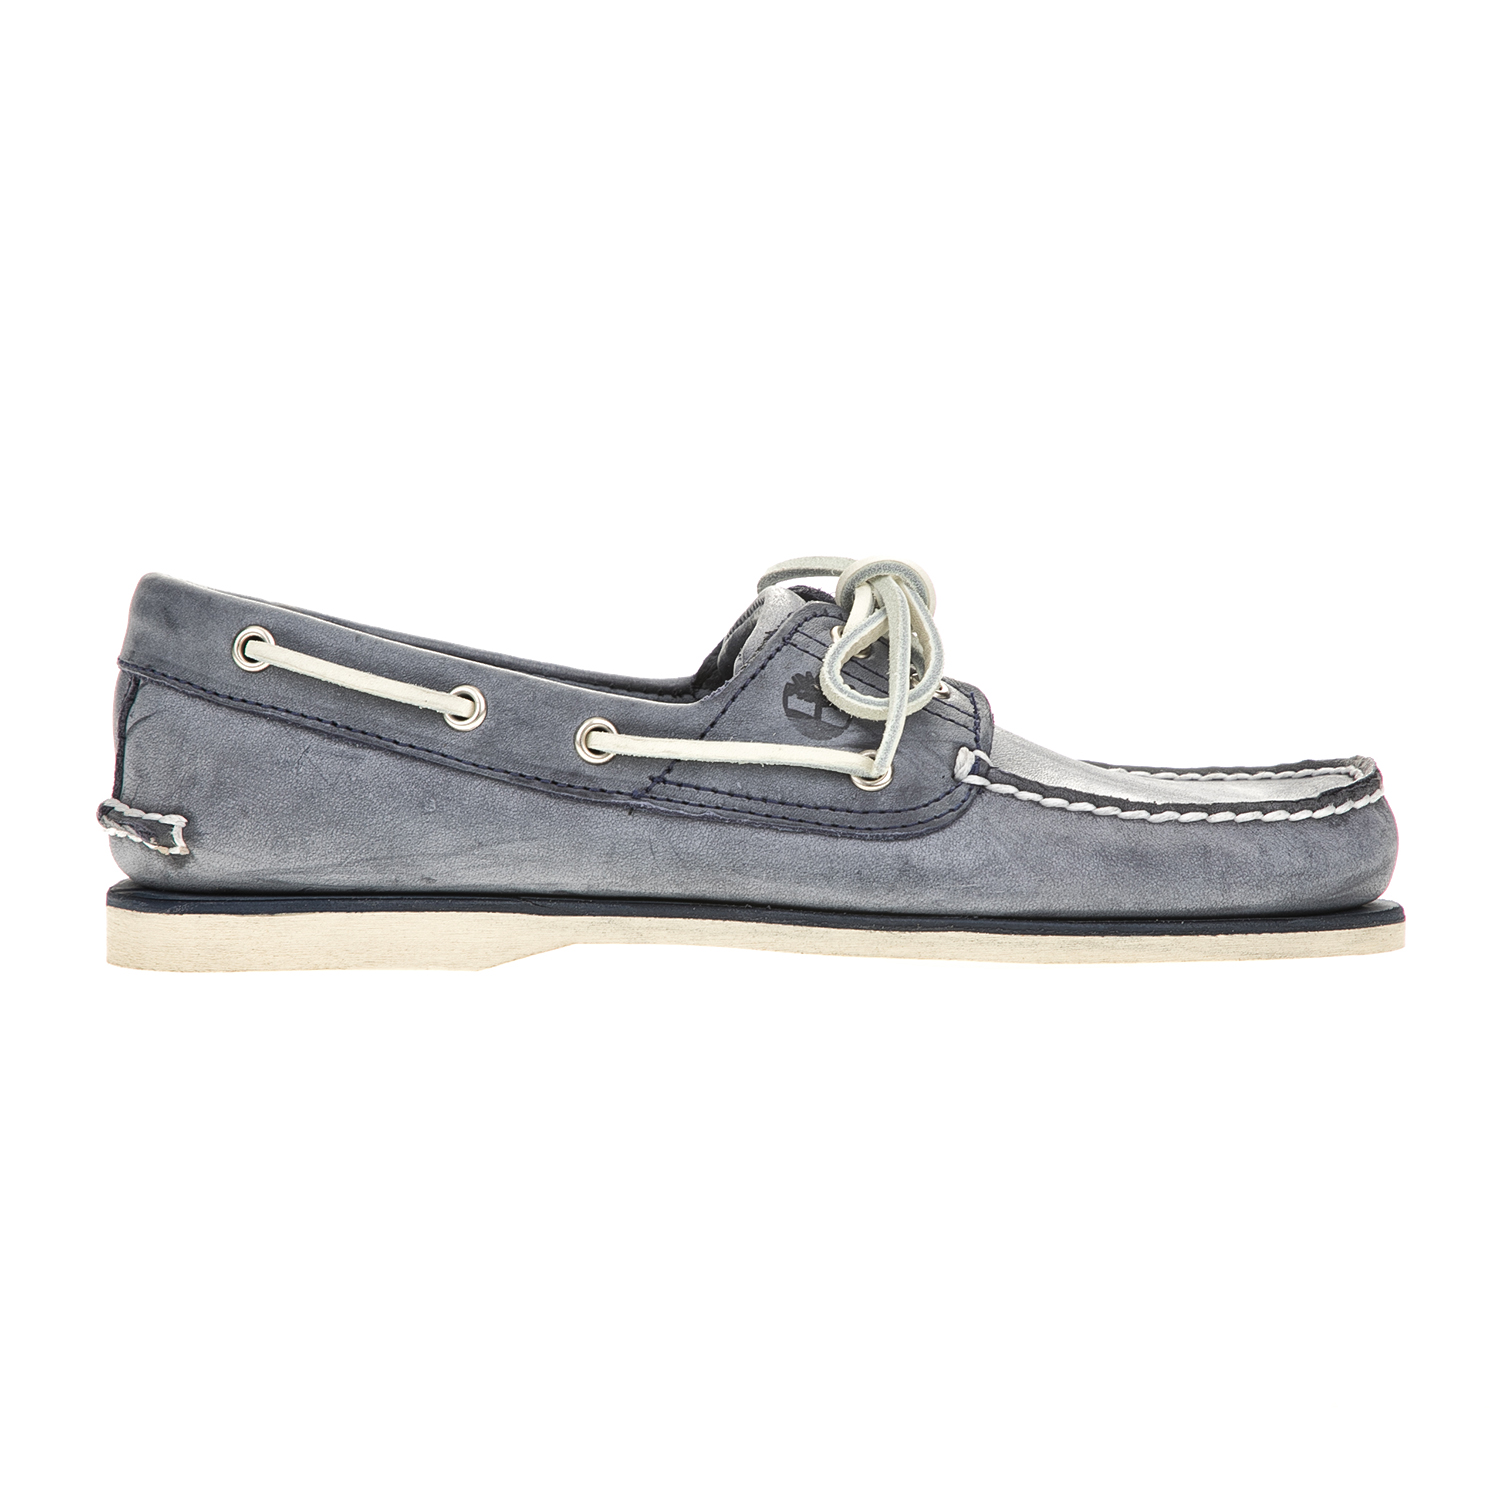 TIMBERLAND - Ανδρικά boat shoes TIMBERLAND CLASSIC BOAT μπλε ανδρικά παπούτσια boat shoes